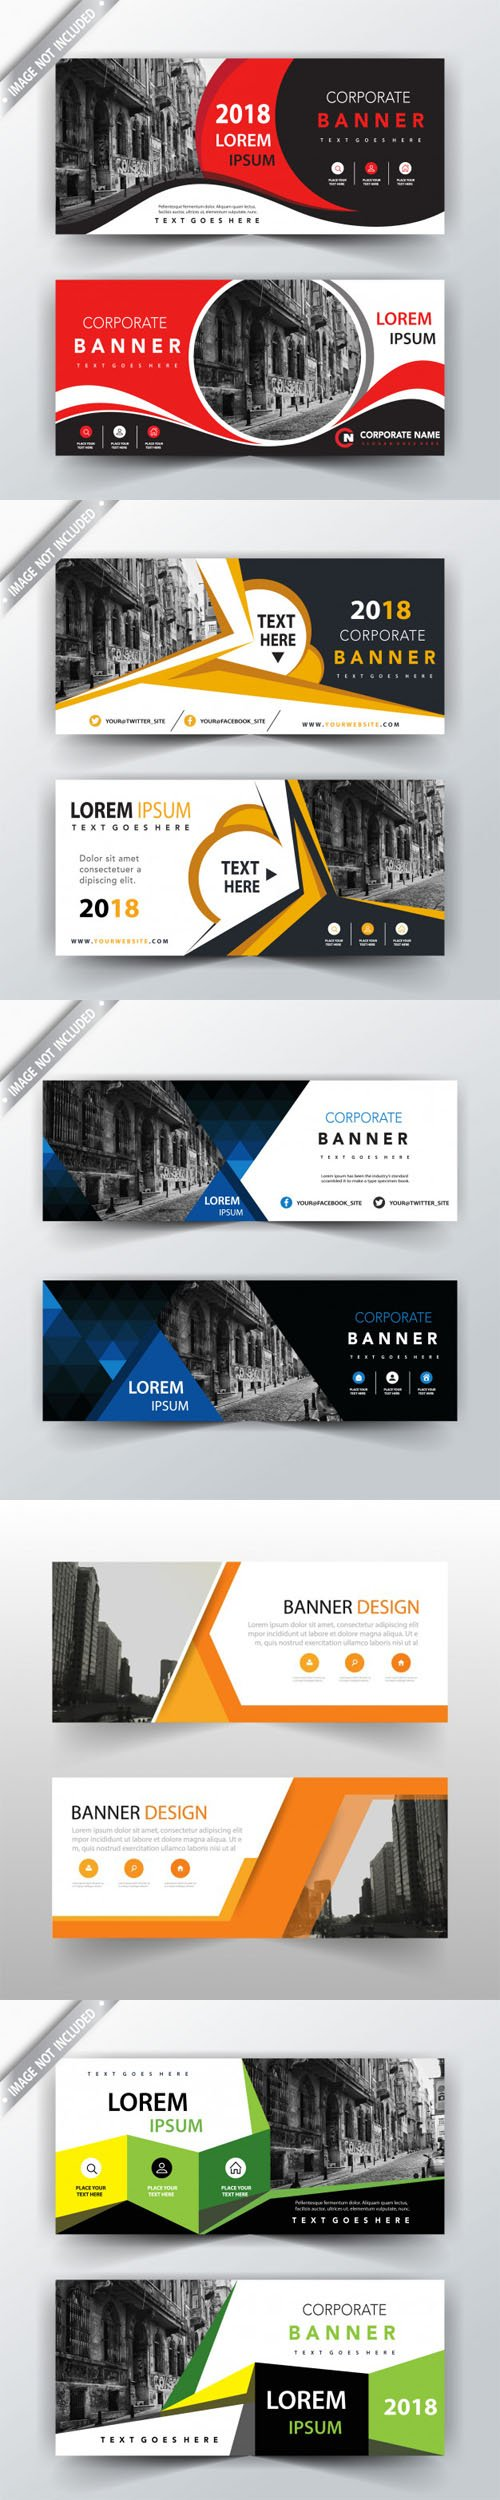 5 Headers illustration Design in Vector